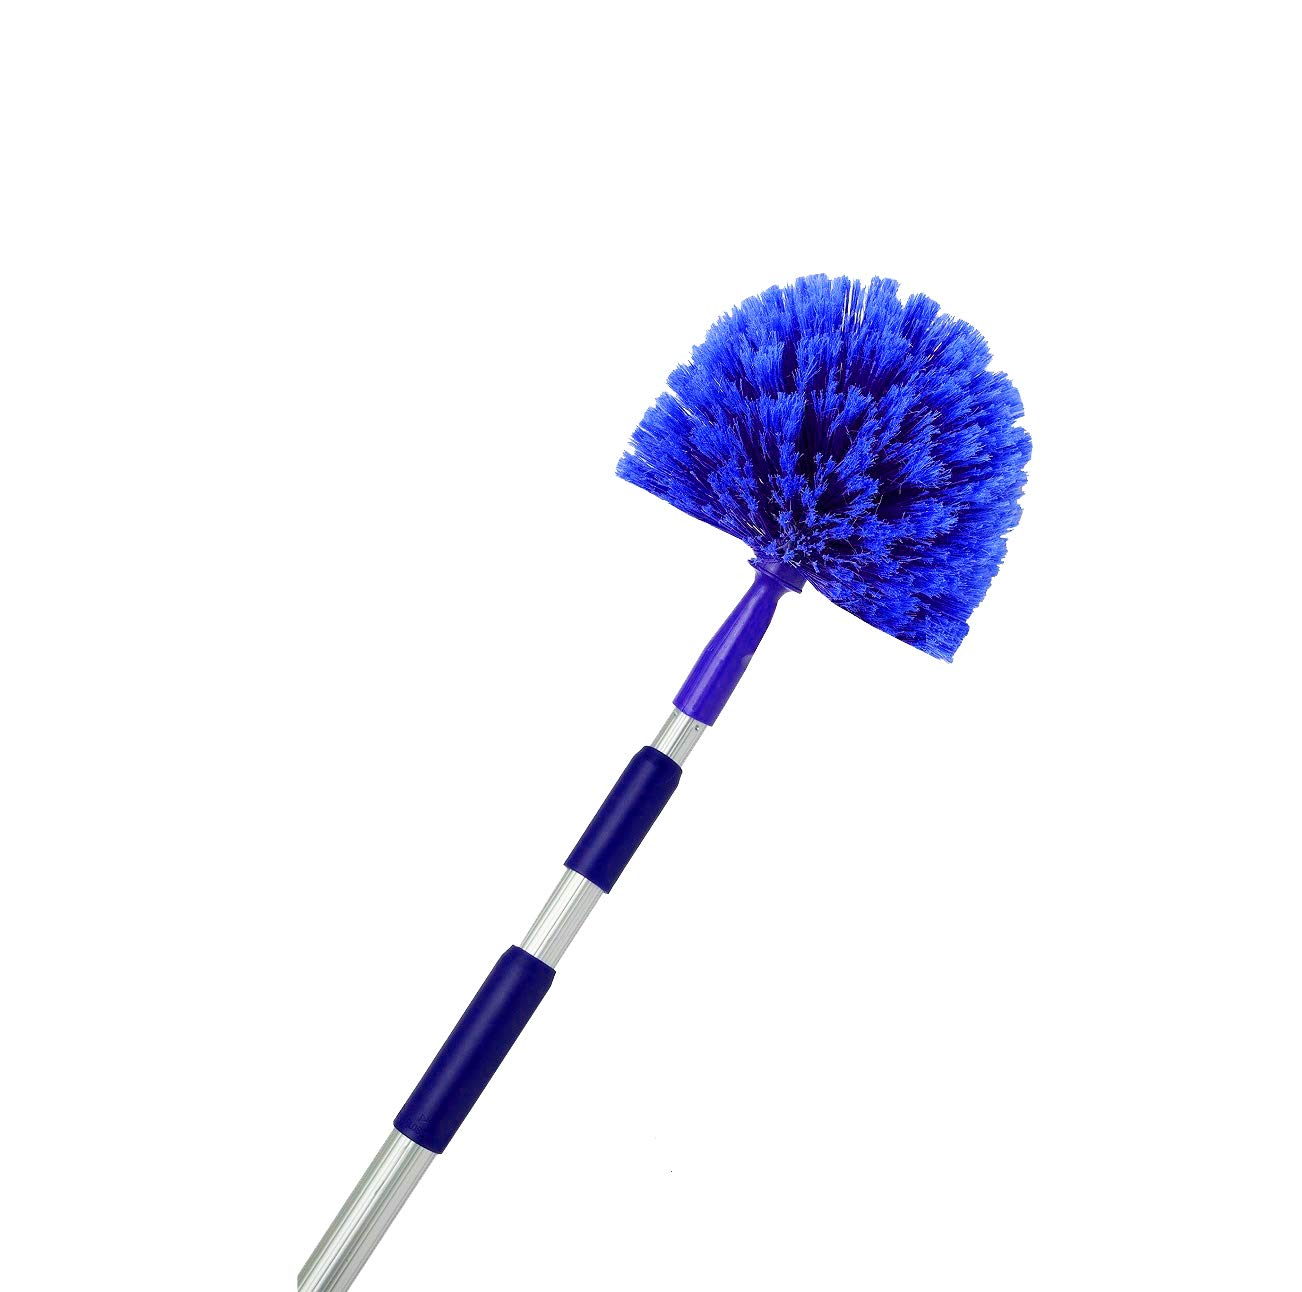 Cobweb Duster, Extendable Reach 20 feet, Ceiling Fan Duster   3-Stage Aluminum Telescoping Pole   Medium Stiff Bristles   Long Handle Webster Duster For Cleaning   U.S Duster Co. by Touch Of Oranges